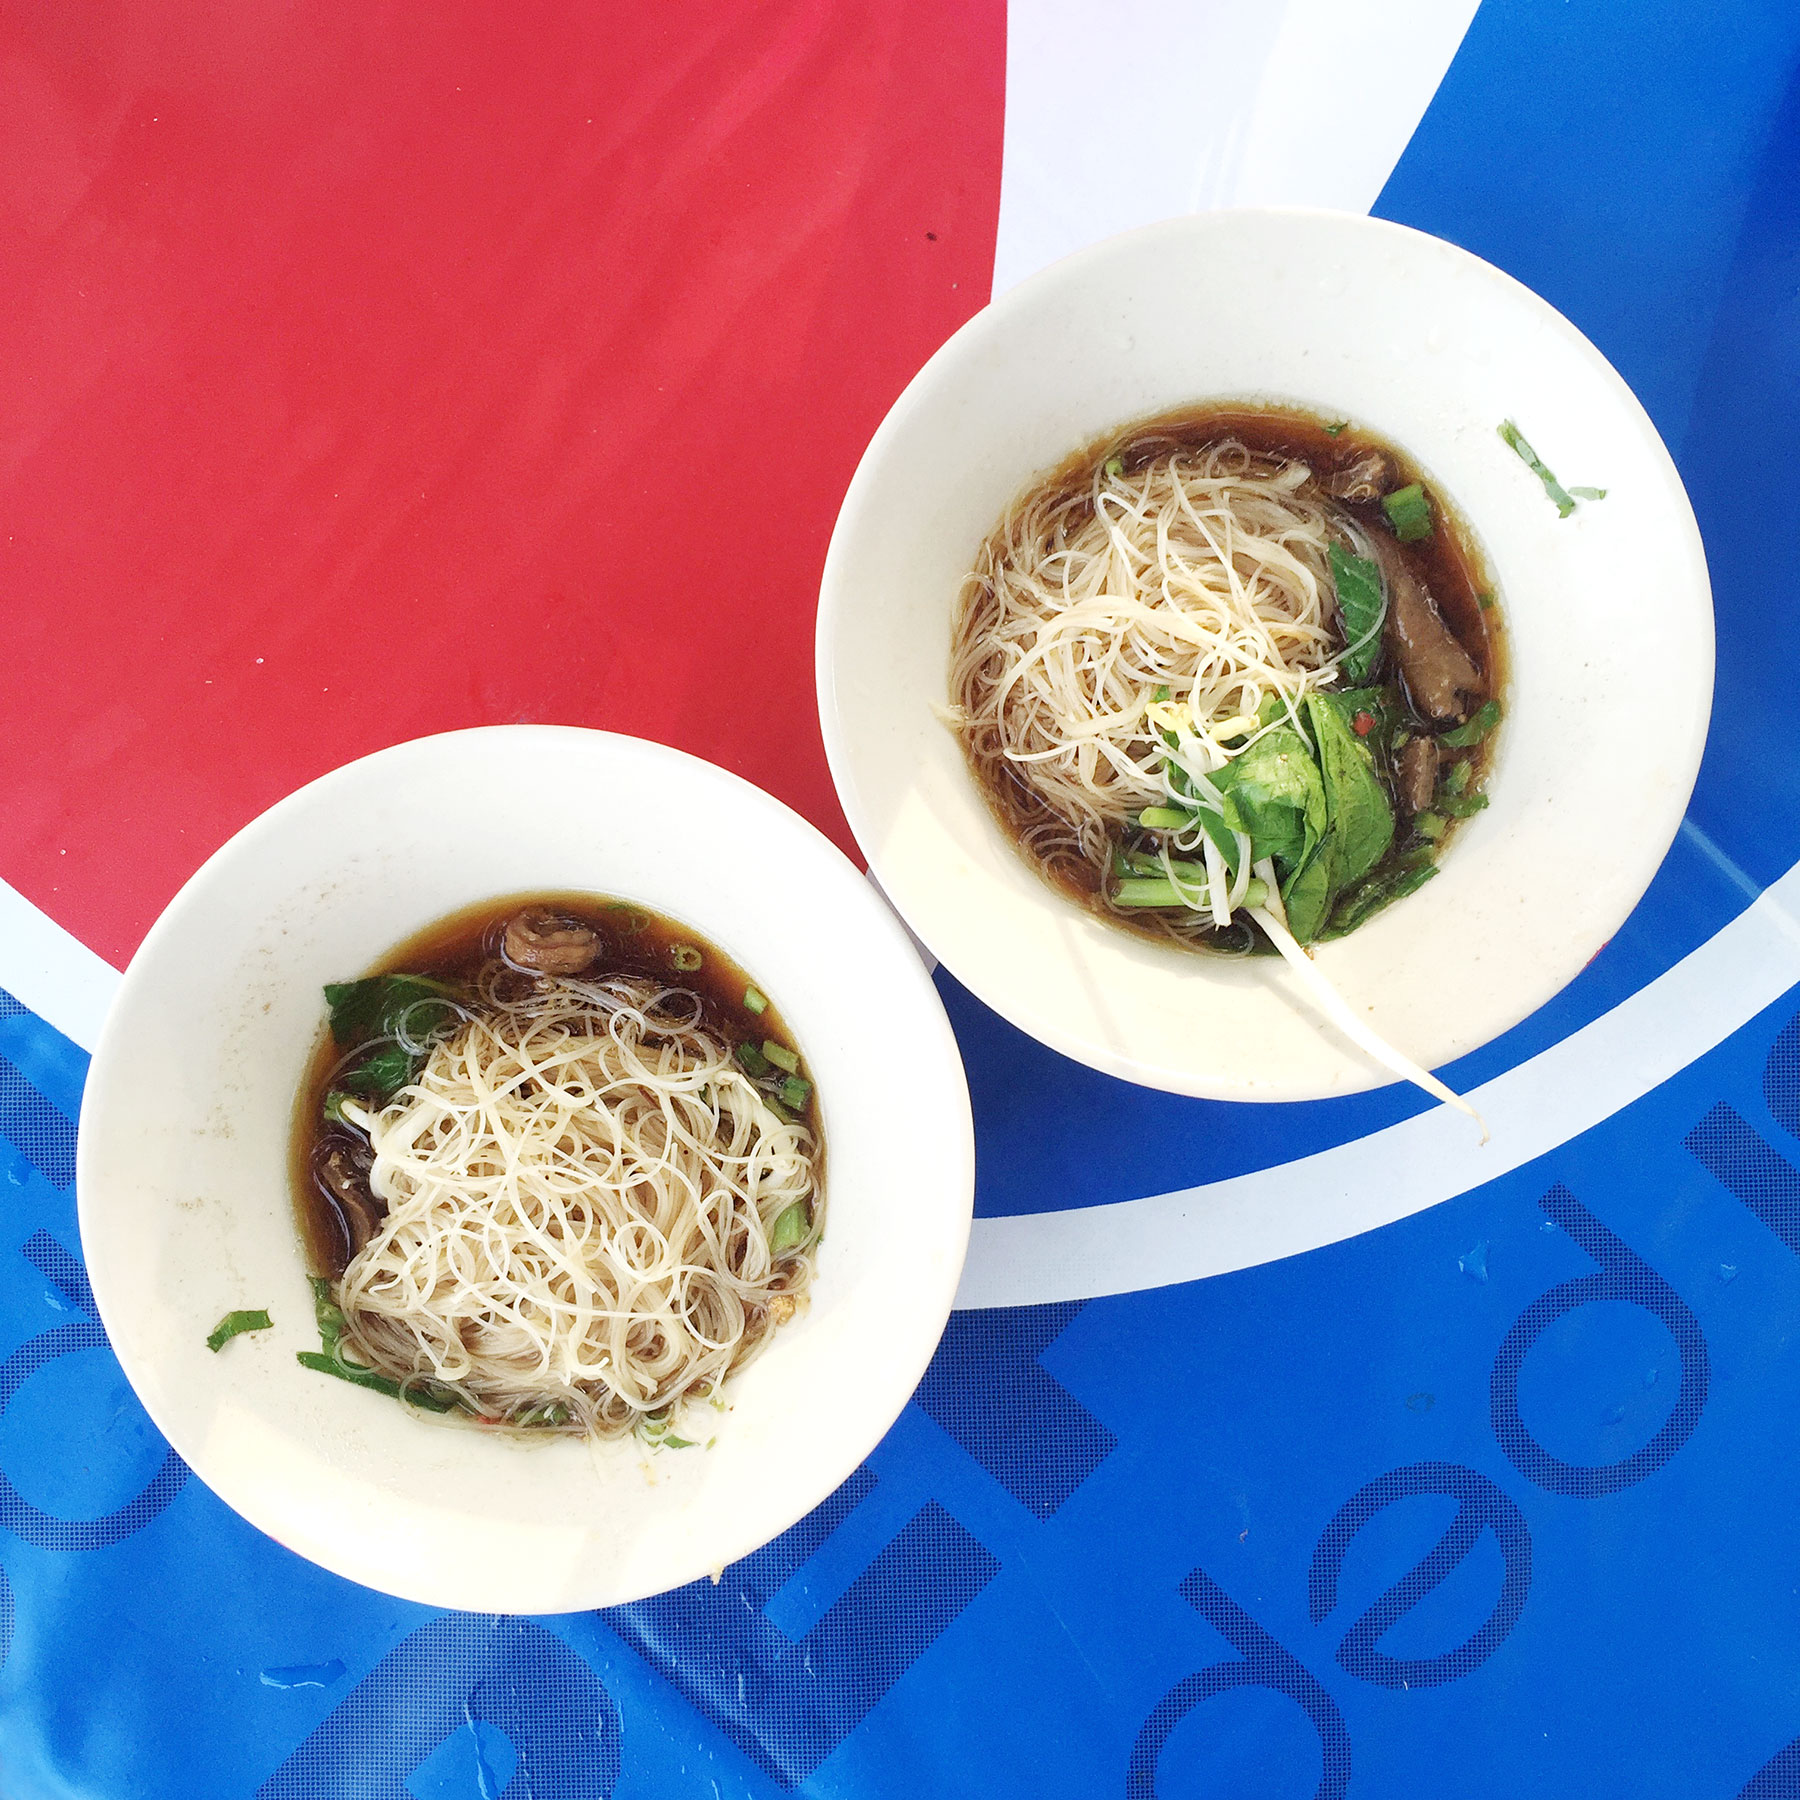 BOAT NOODLES:  You must try boat noodles when you visit Ayutthaya. They're literally made on a boat!